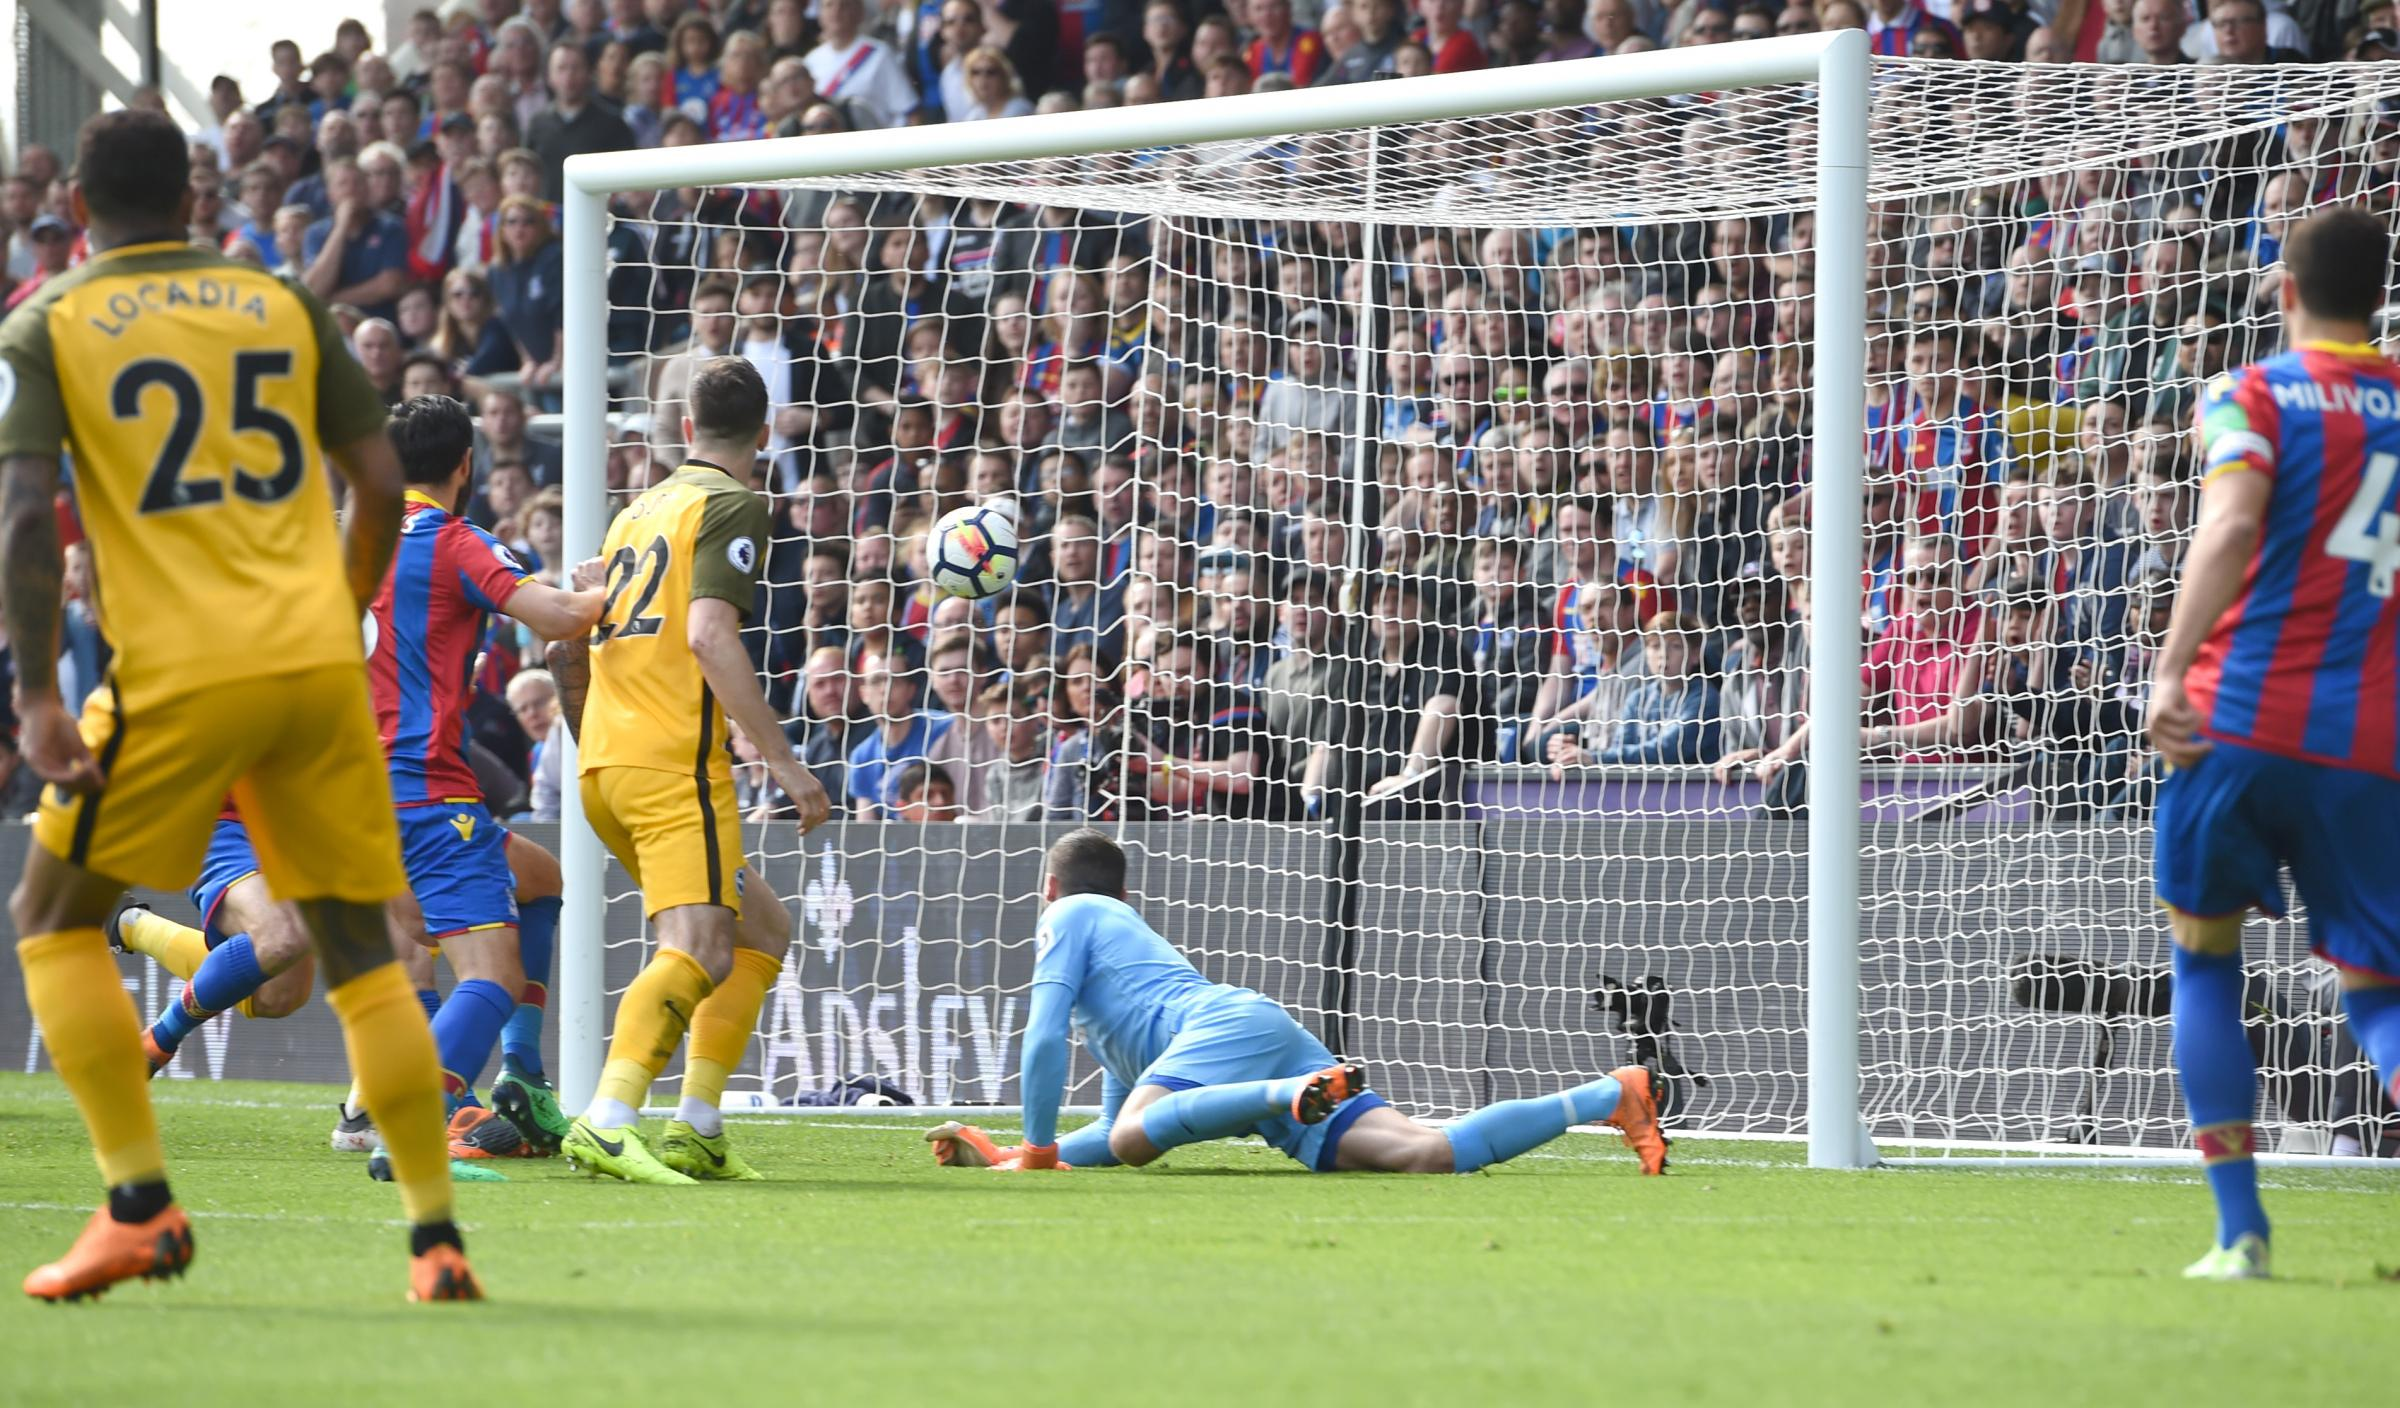 Mathew Ryan is beaten as Albion concede from an early corner at Selhurst Park. Picture Simon Dack.